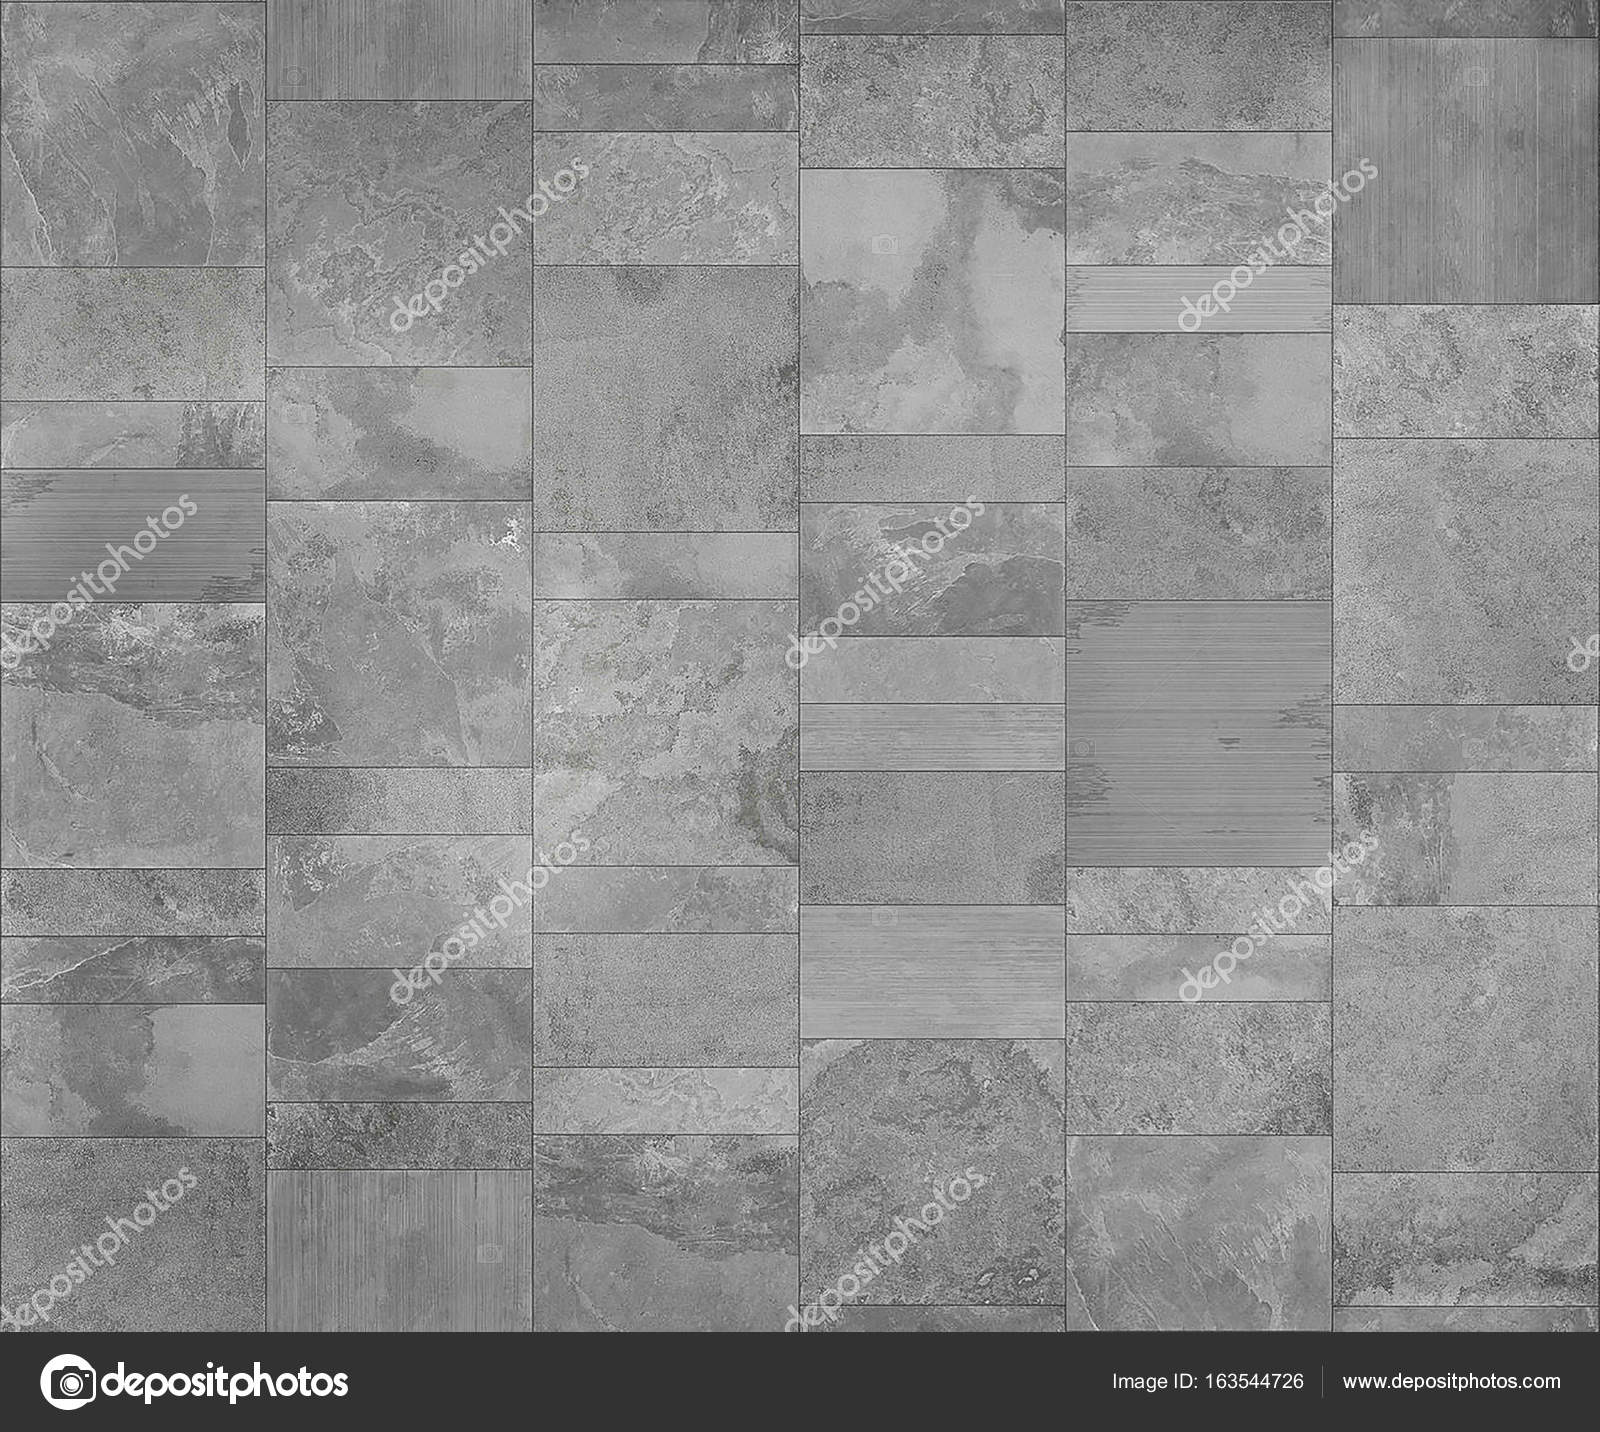 Slate tile ceramic seamless texture light gray map for 3d graphic covering tile lay texture for designers and printmaking photo by threedicube dailygadgetfo Choice Image